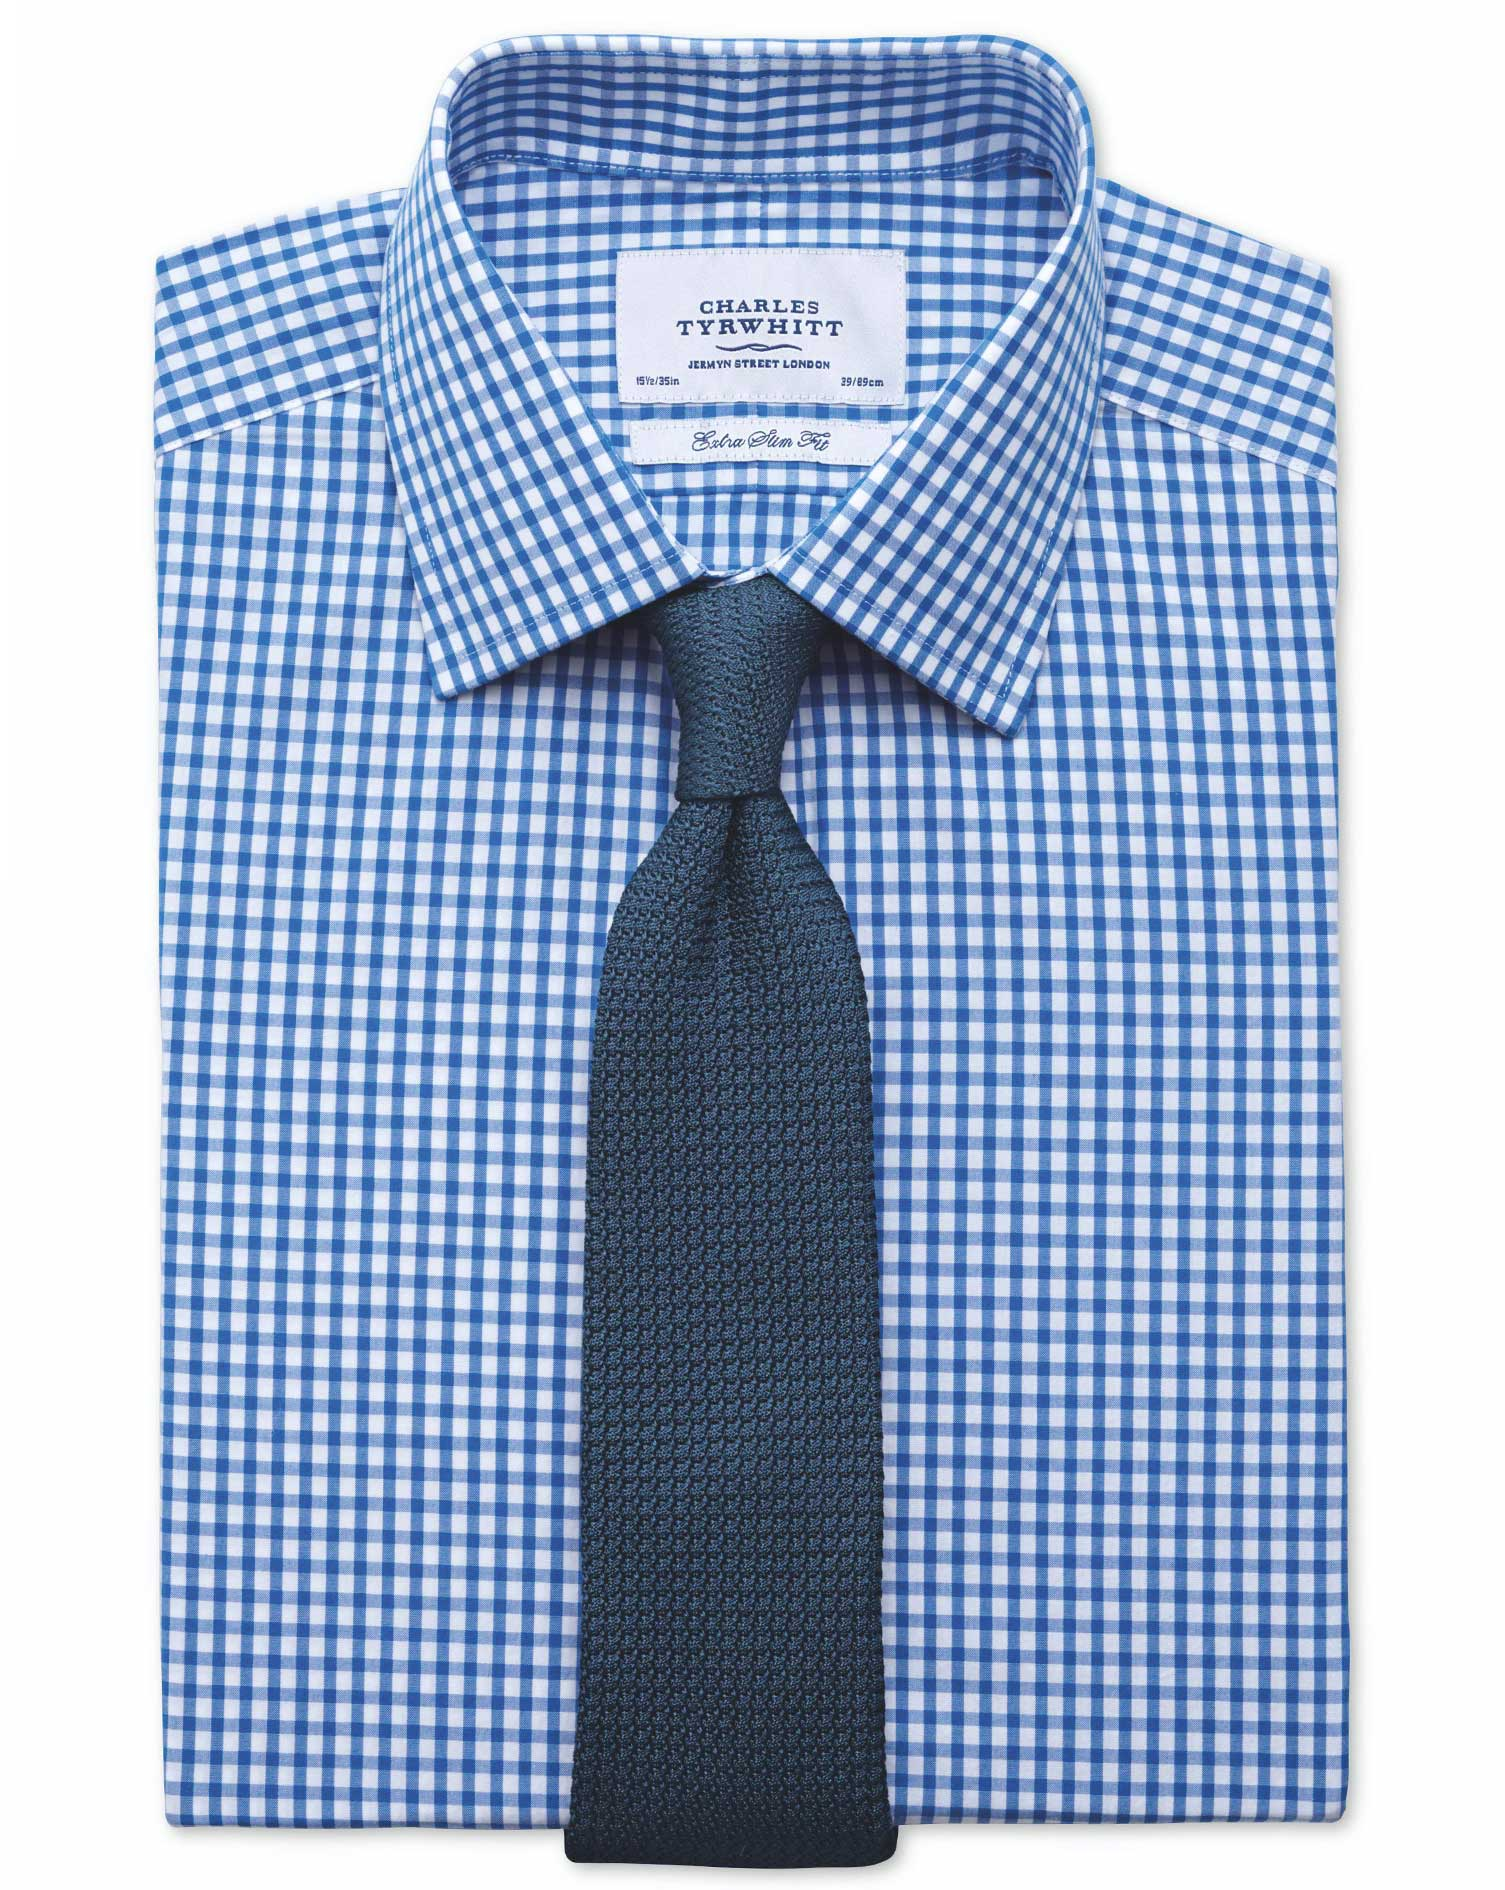 Classic Fit Gingham Royal Blue Cotton Formal Shirt Double Cuff Size 16/33 by Charles Tyrwhitt